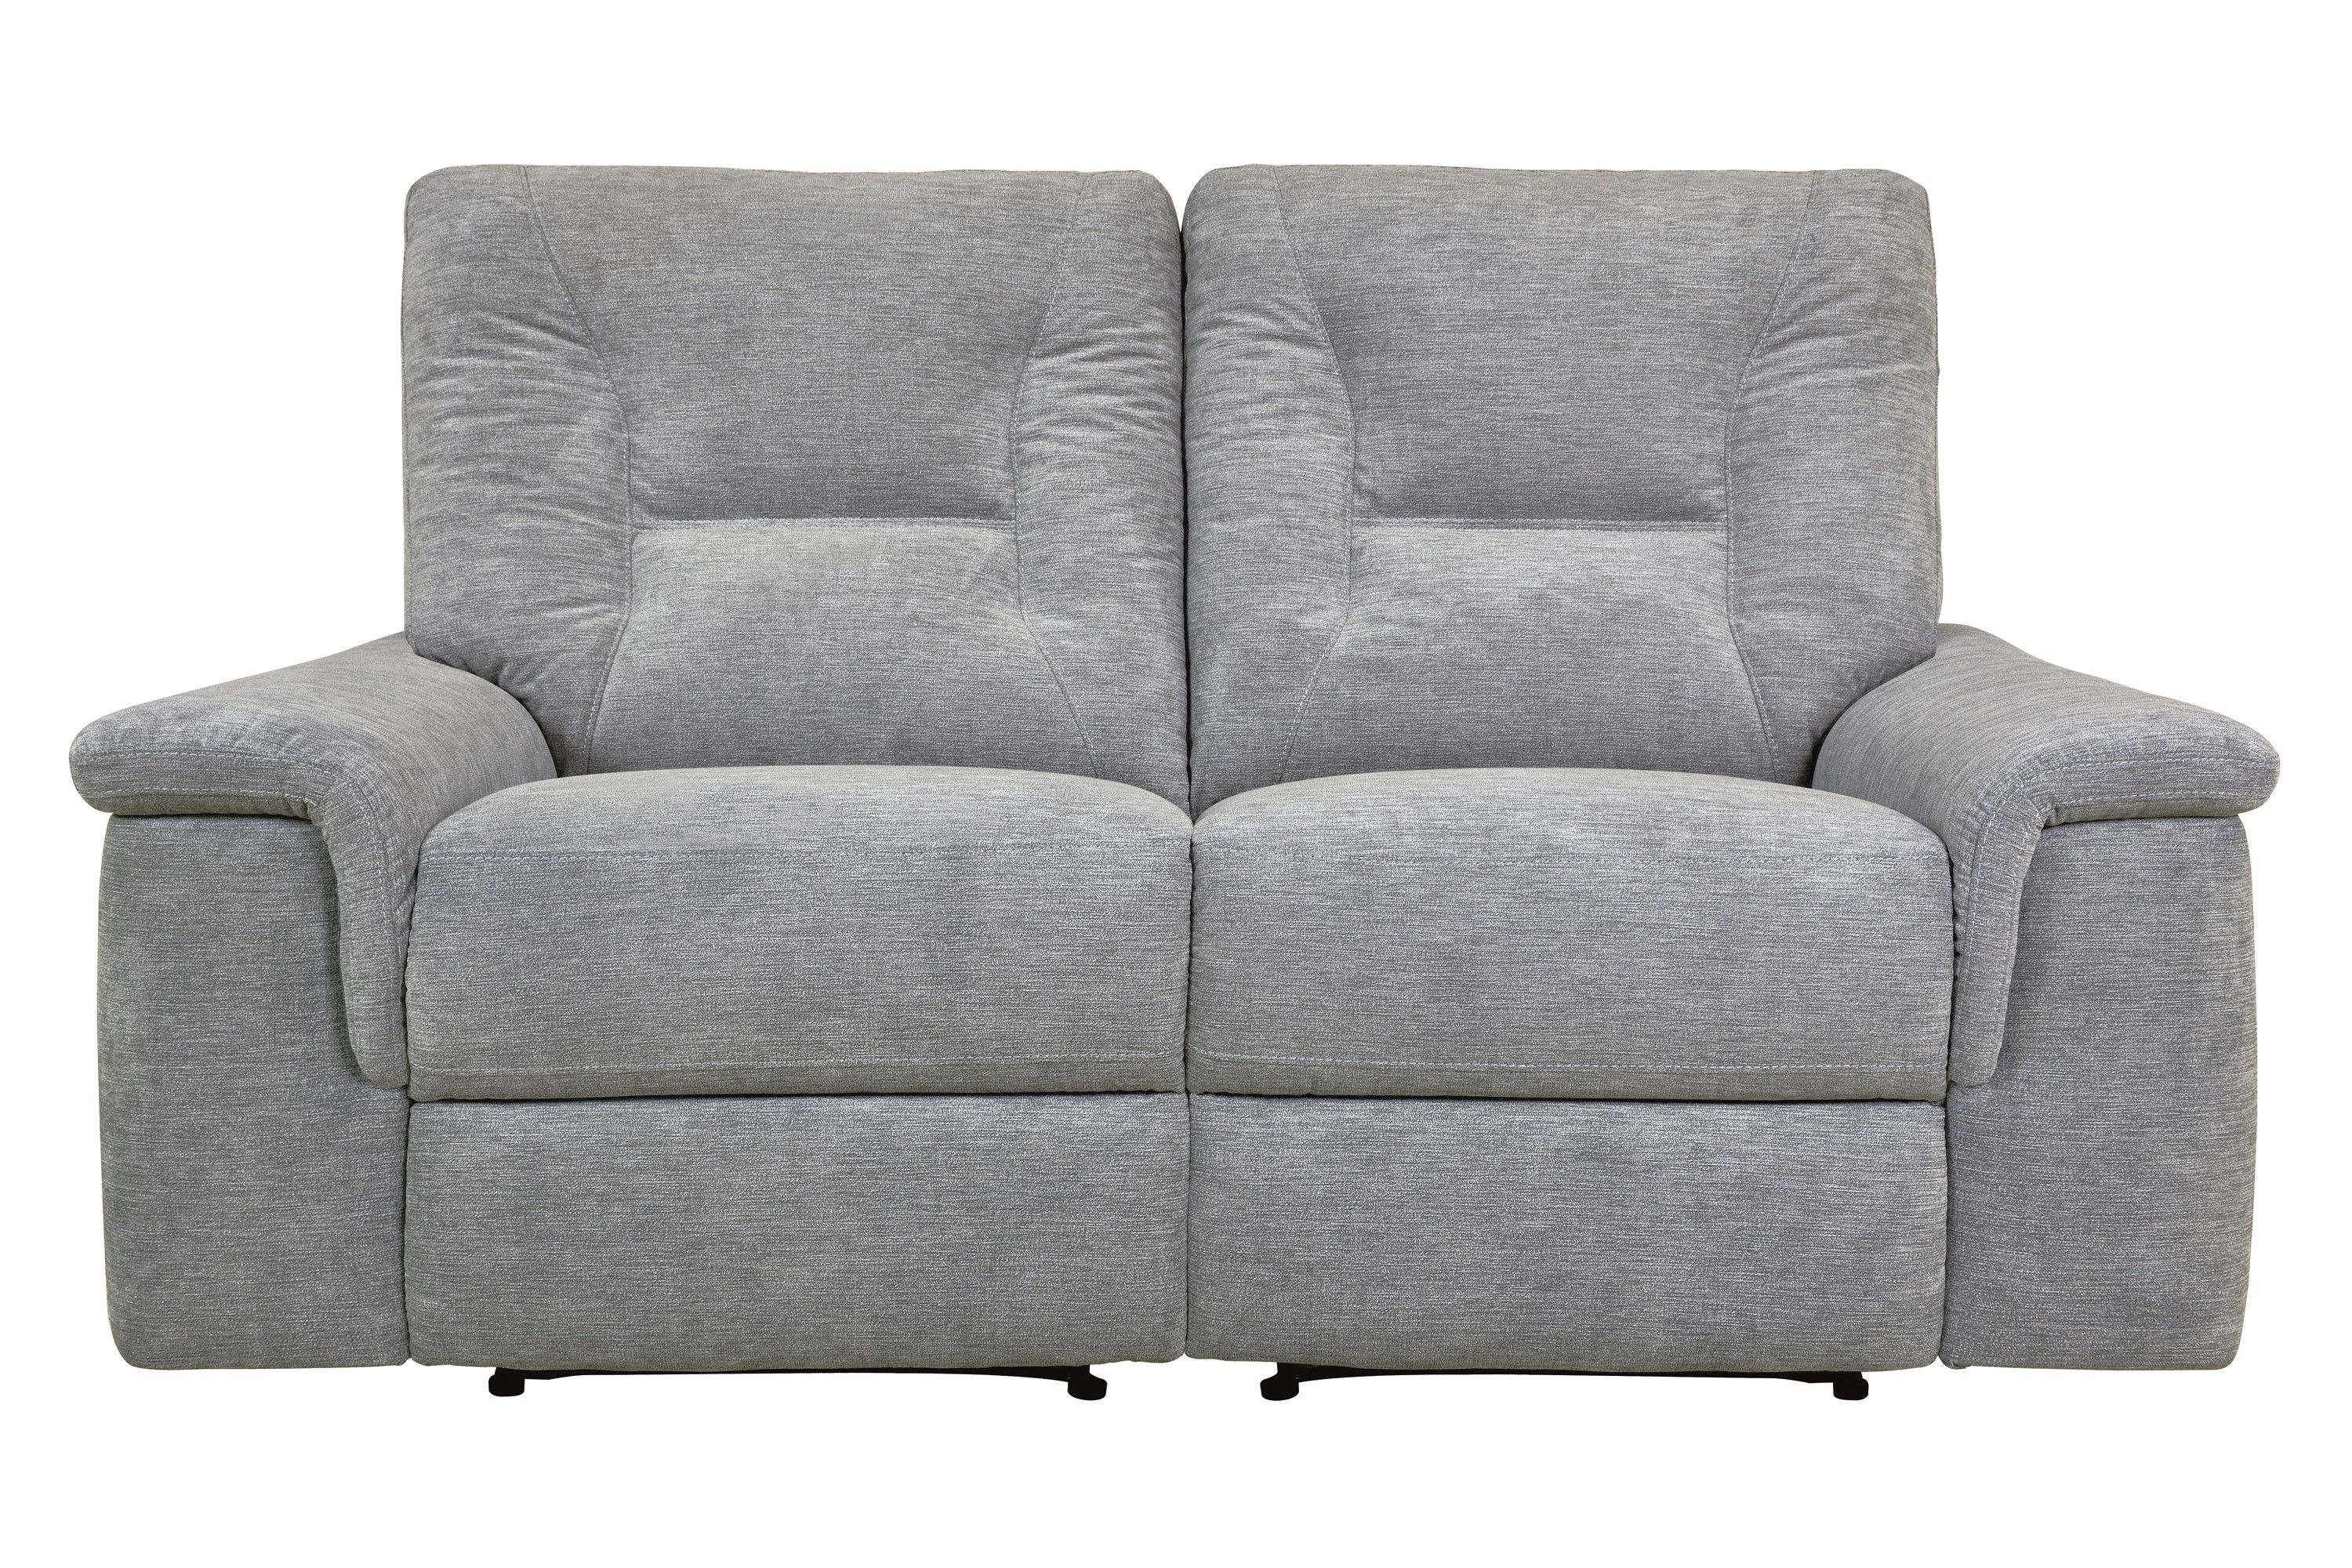 Home Elegance Edelweiss Metal Gray Double Reclining Love Seat